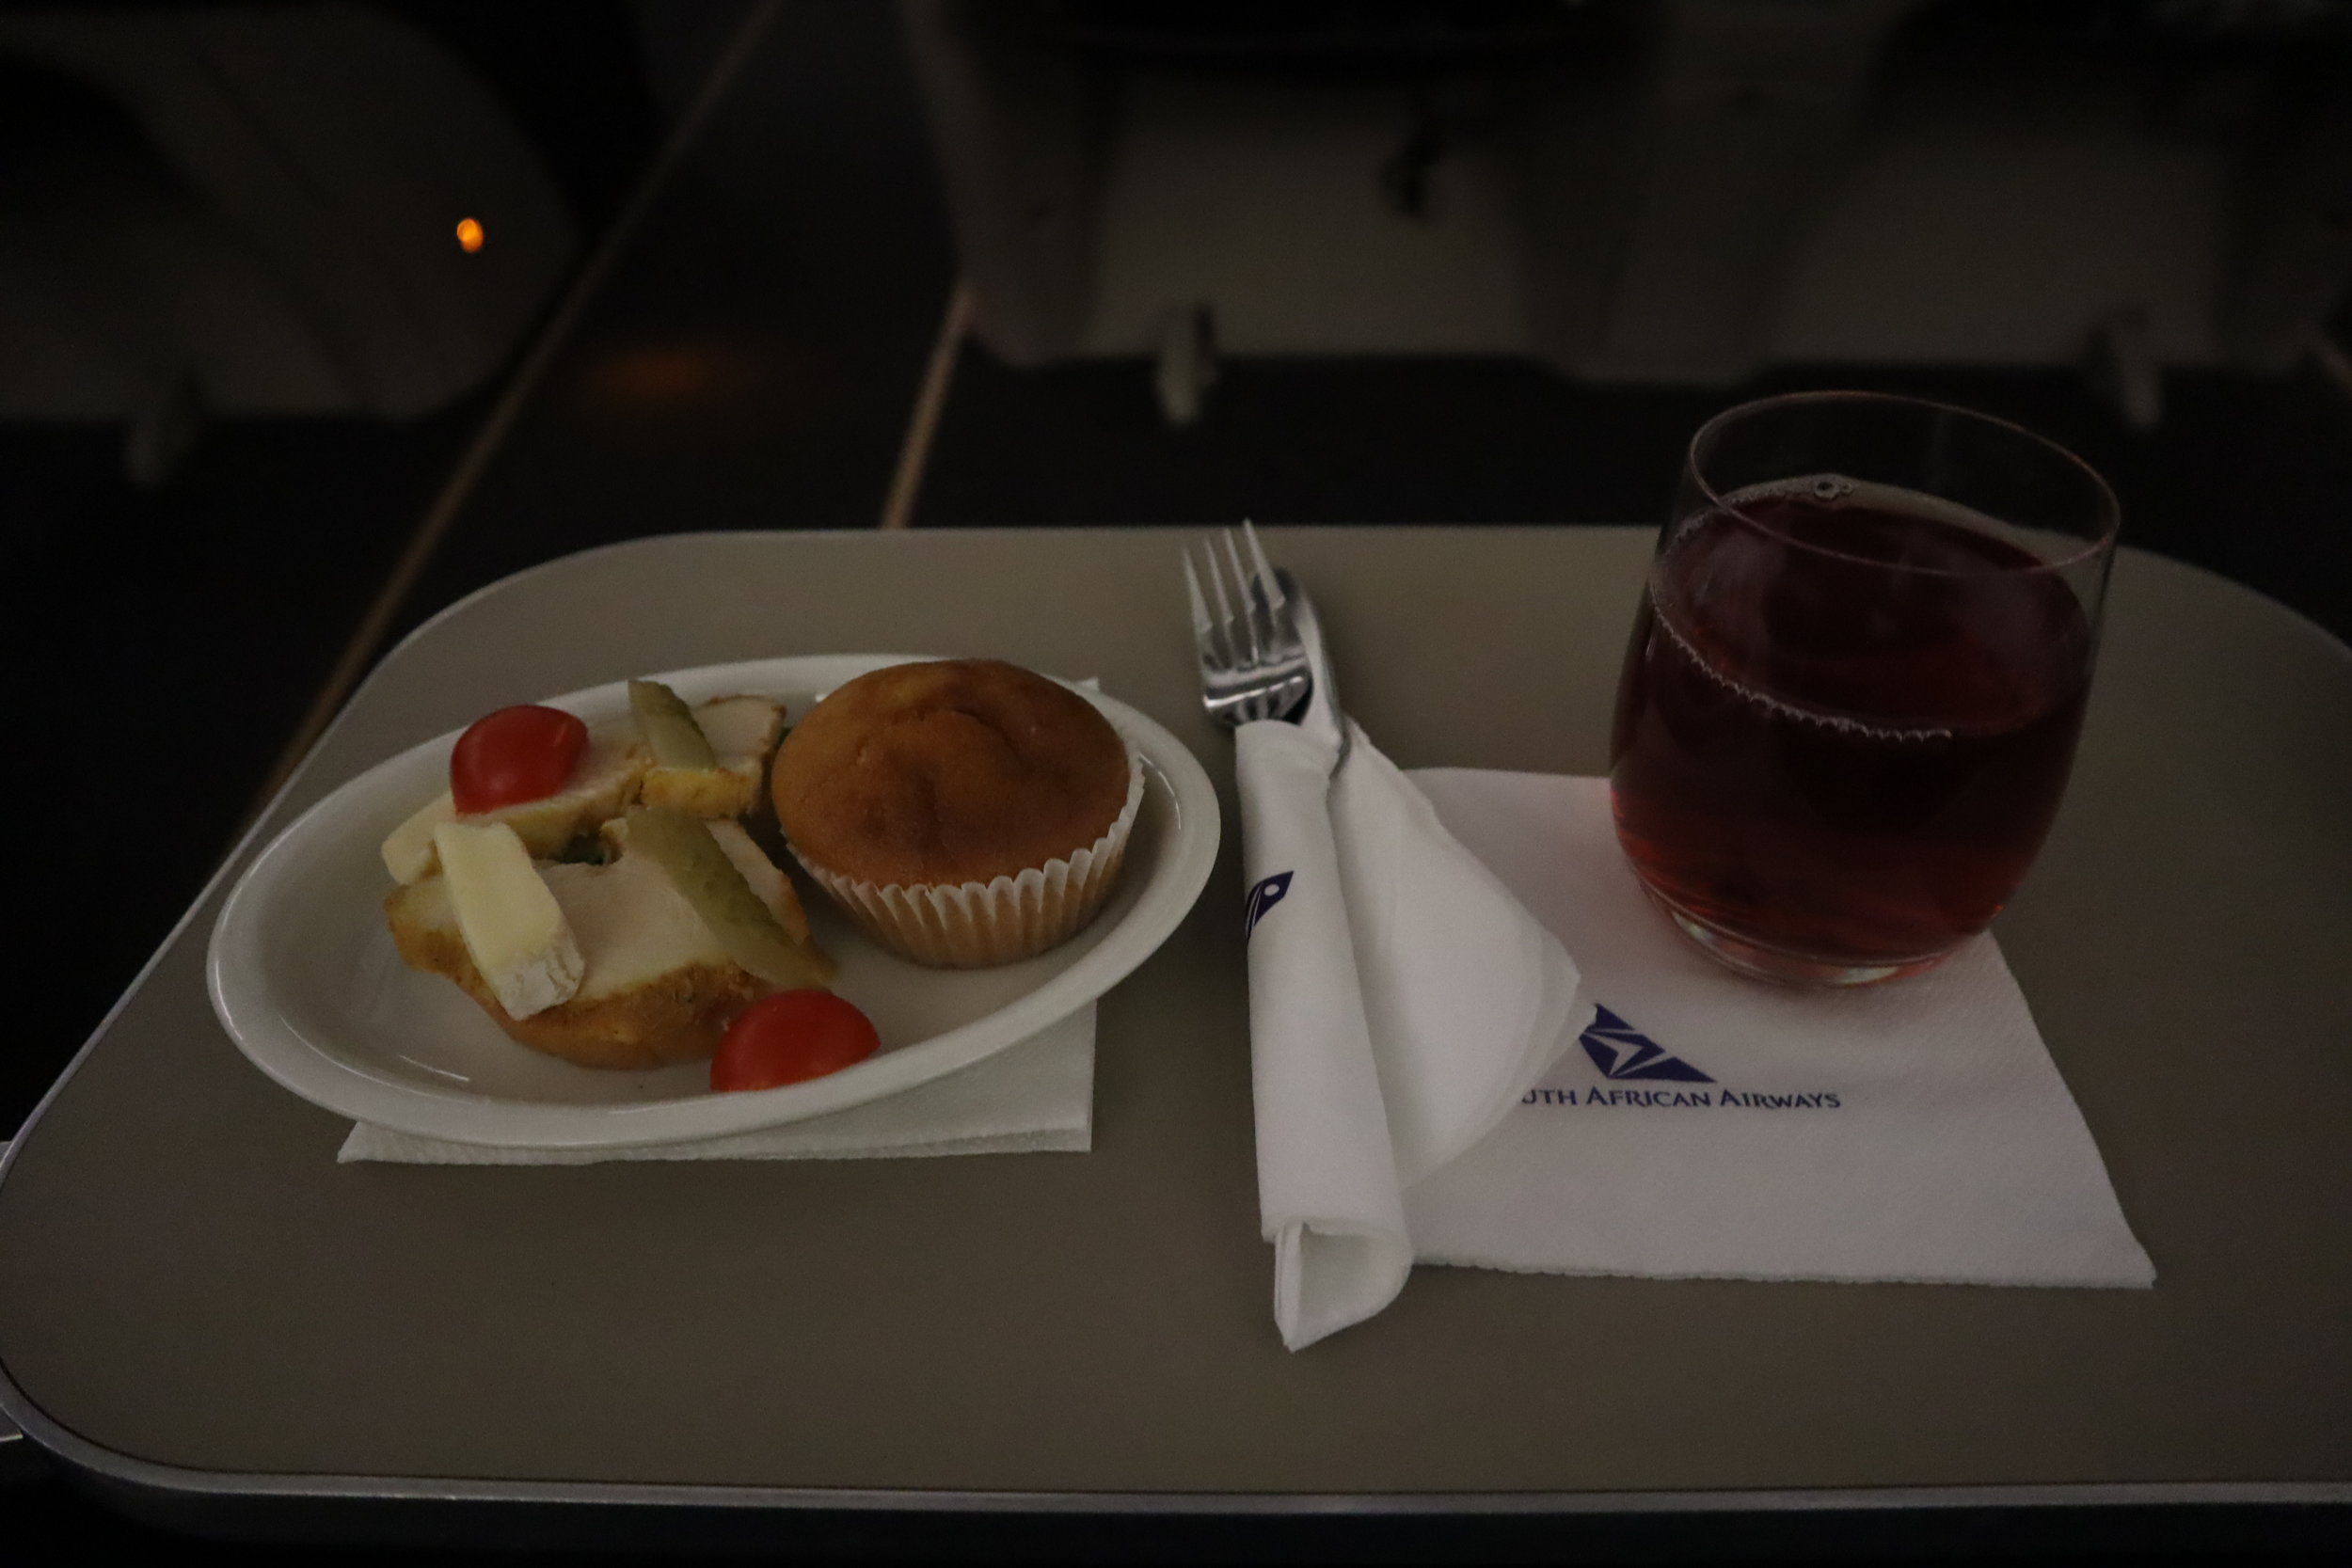 South African Airways business class – Snack service